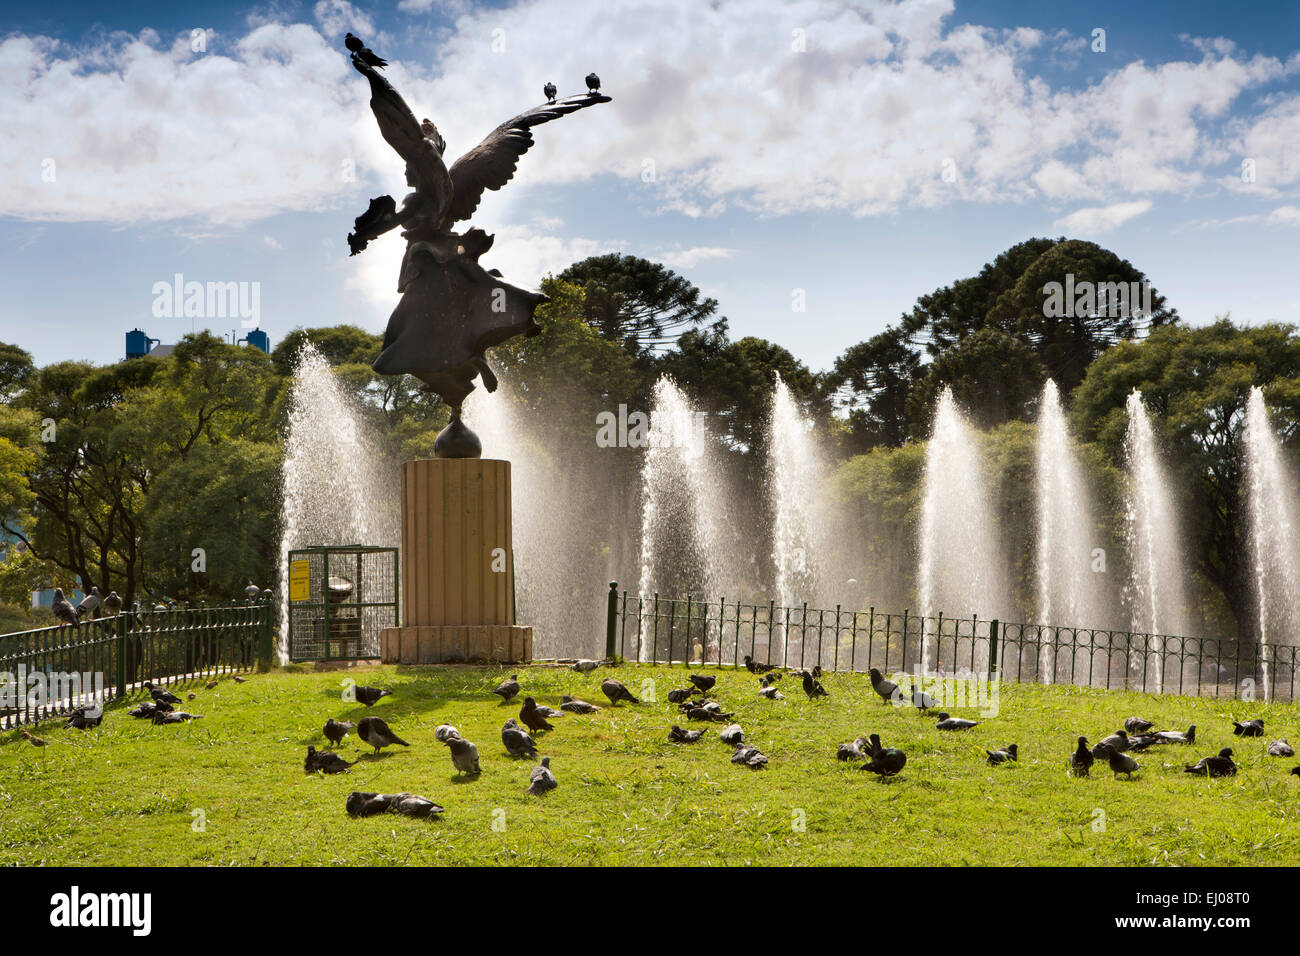 Argentina, Buenos Aires, Cabalito, Parque Centenario, Centenary Park, pigeons around Angel statue overlooking lake - Stock Image